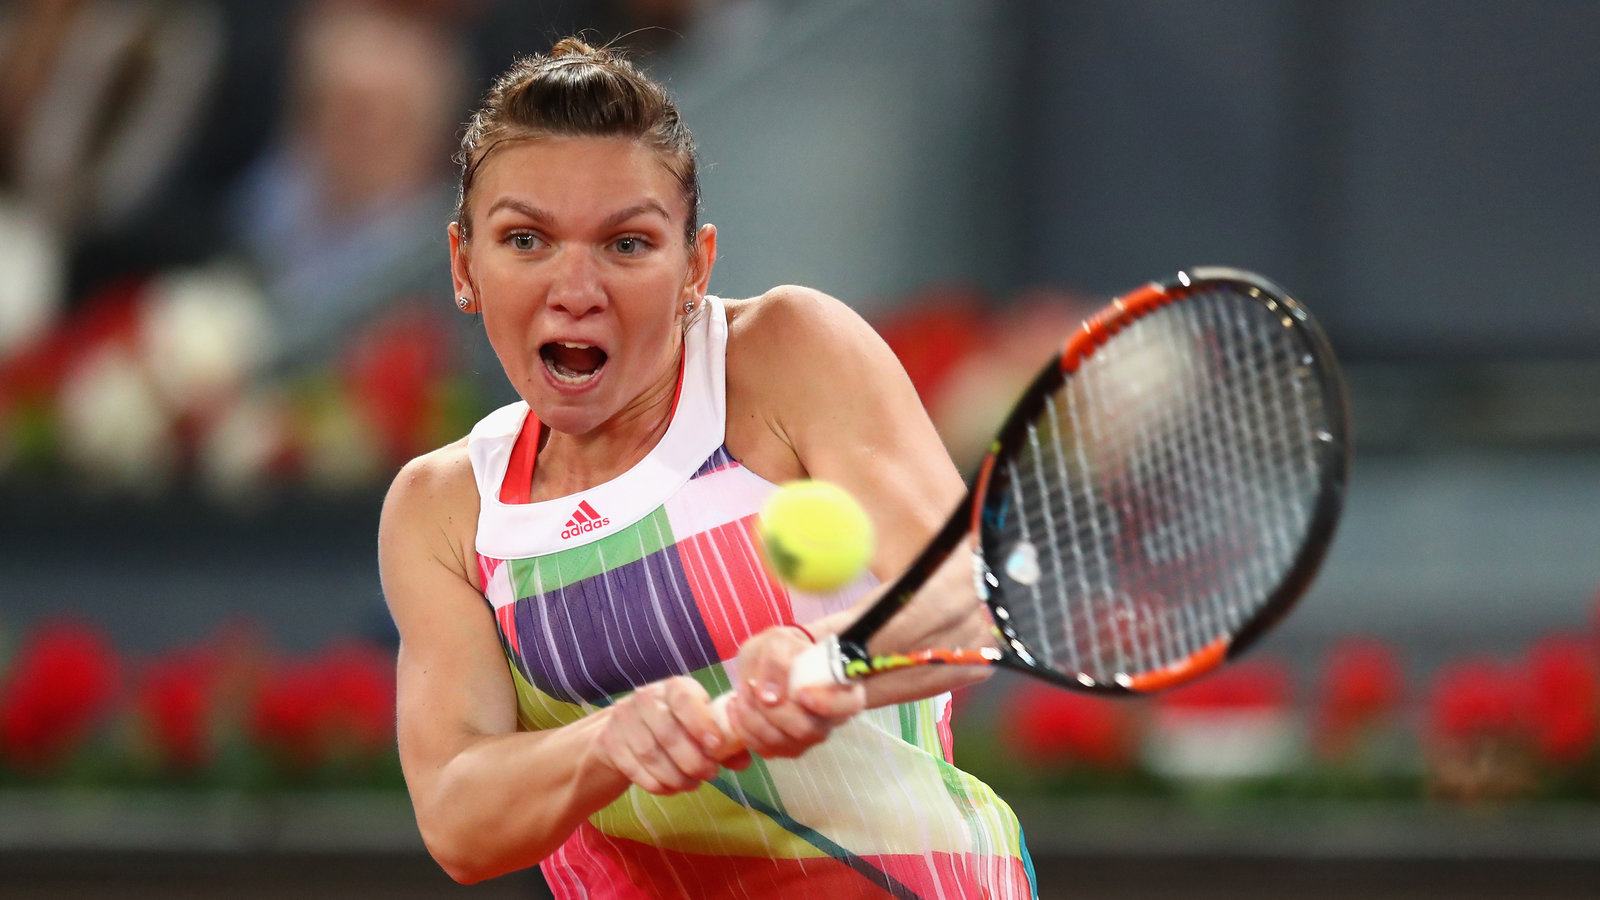 Simona Halep Wins On Romanian Day In Madrid The New York